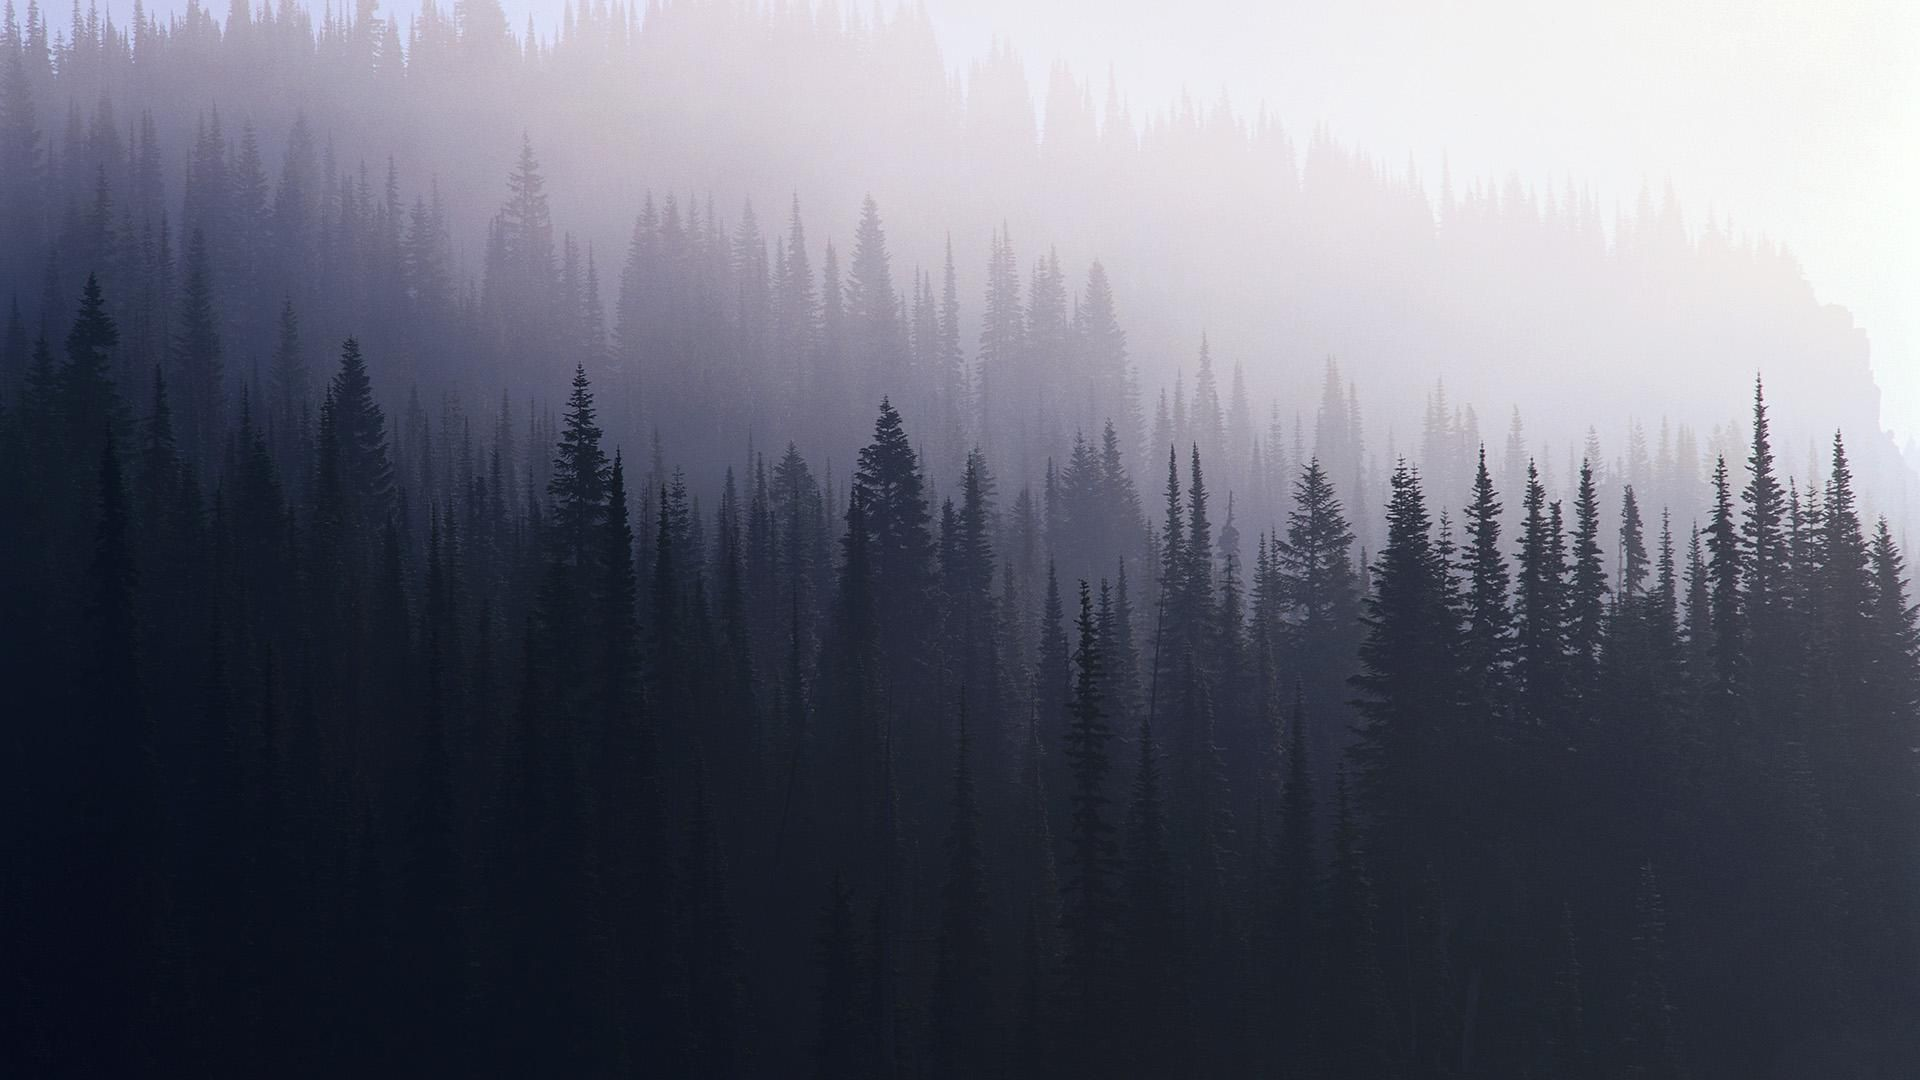 Forest In Mist 1920x1080 Hd Wallpaper Tumblr Wallpaper Phone Backgrounds Tumblr